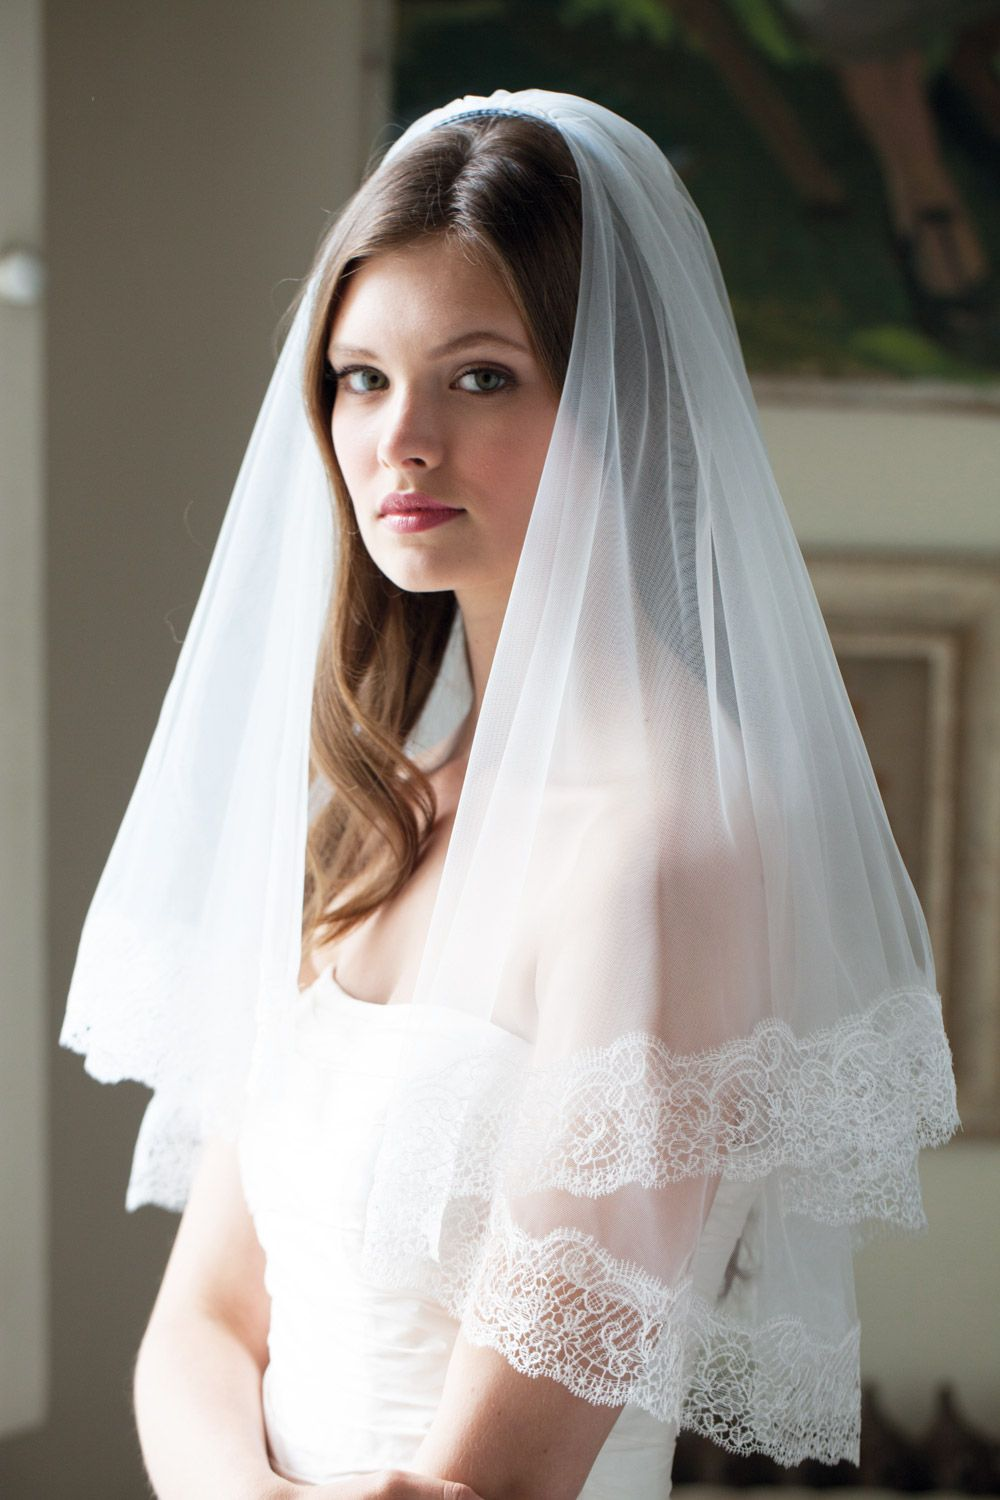 Wedding Bride Veil sluier trieste accessories pinterest lace veils do you want long and floaty short sweet just a sheer hint or full on extravaganza no were not talking about